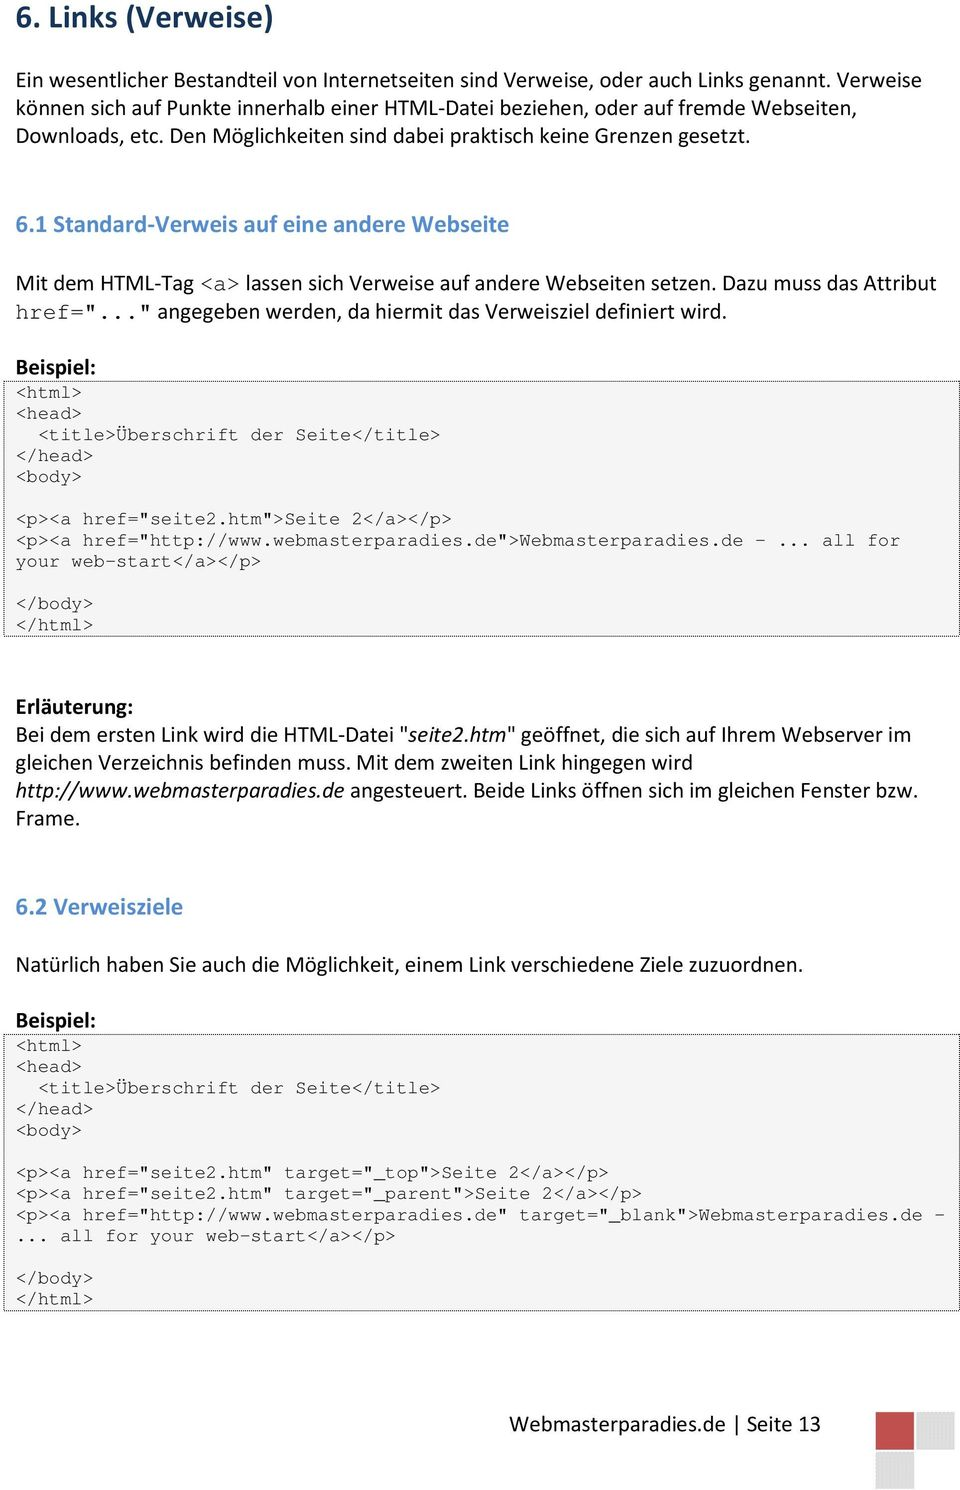 HTML-Tutorial. Grundlegende HTML-Kenntnisse - PDF